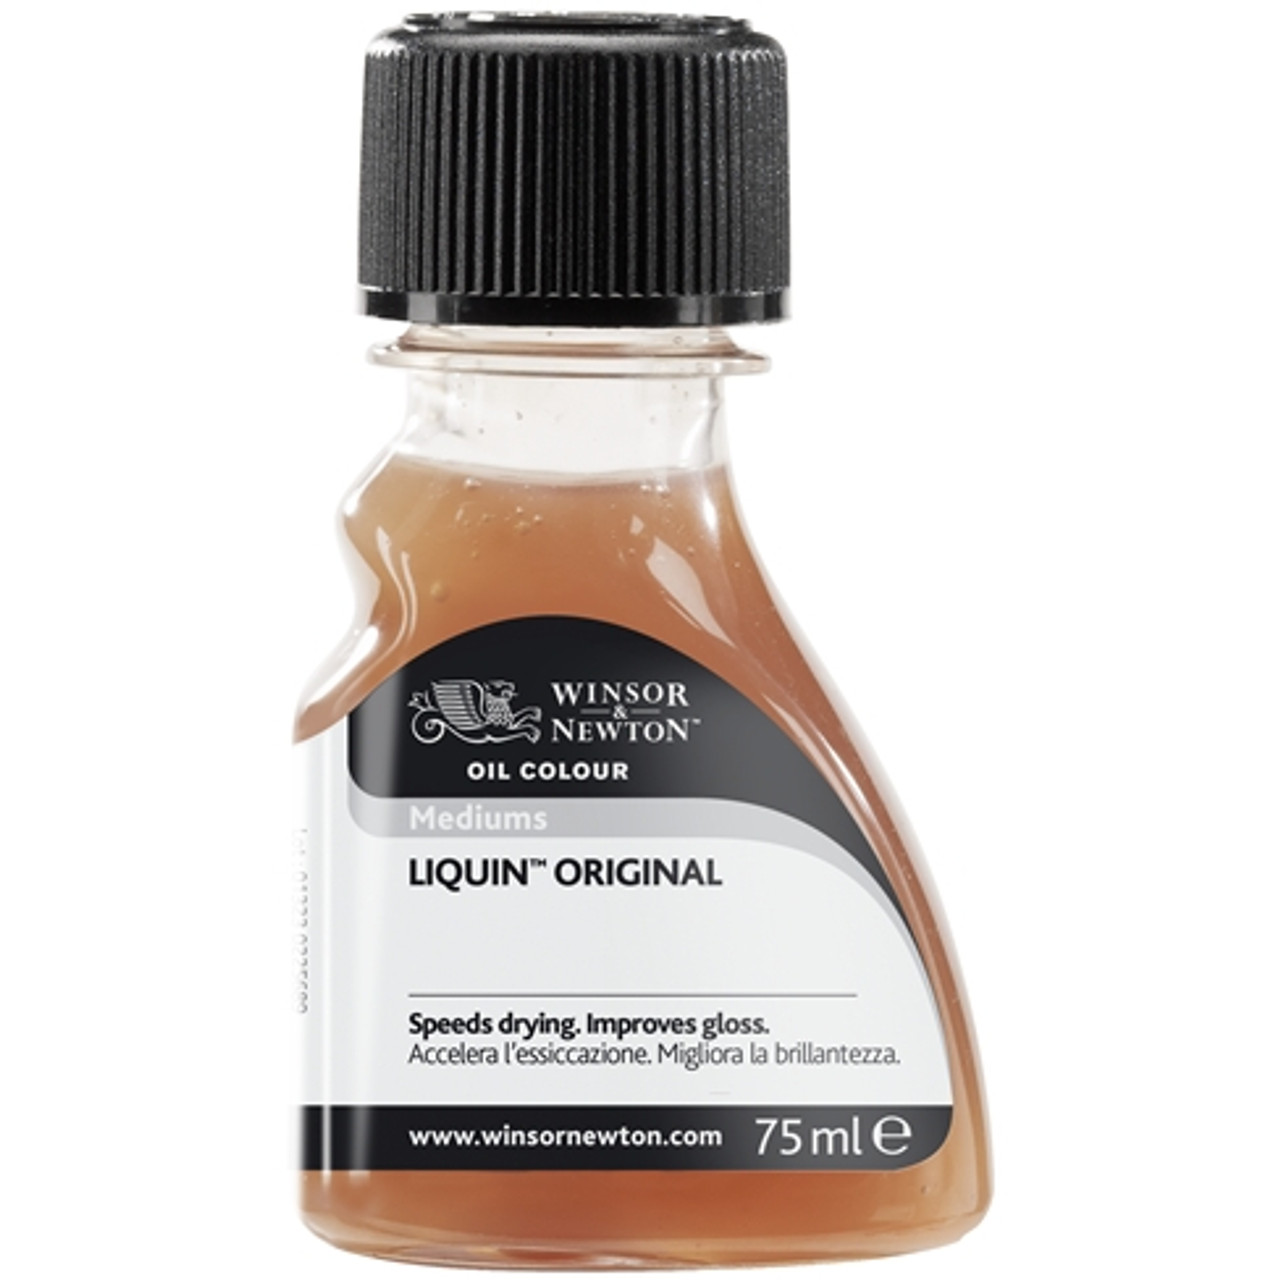 Liquin Original, 75ml